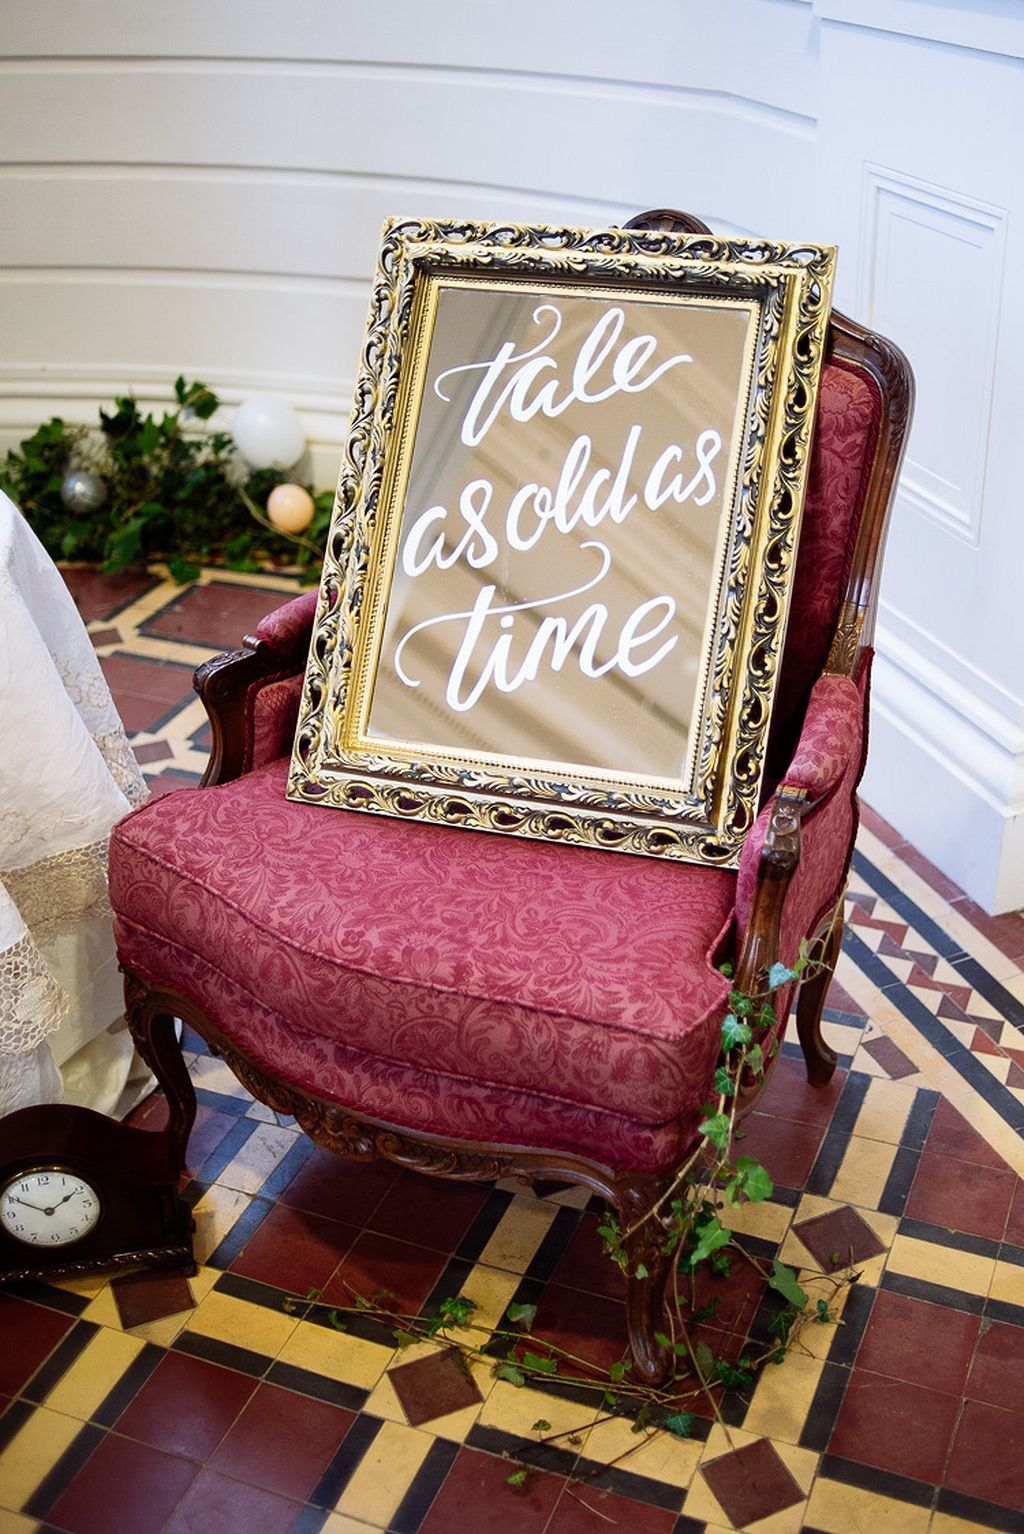 Wedding room decoration ideas 2018   beauty and the beast wedding ideas   Izzy quince in